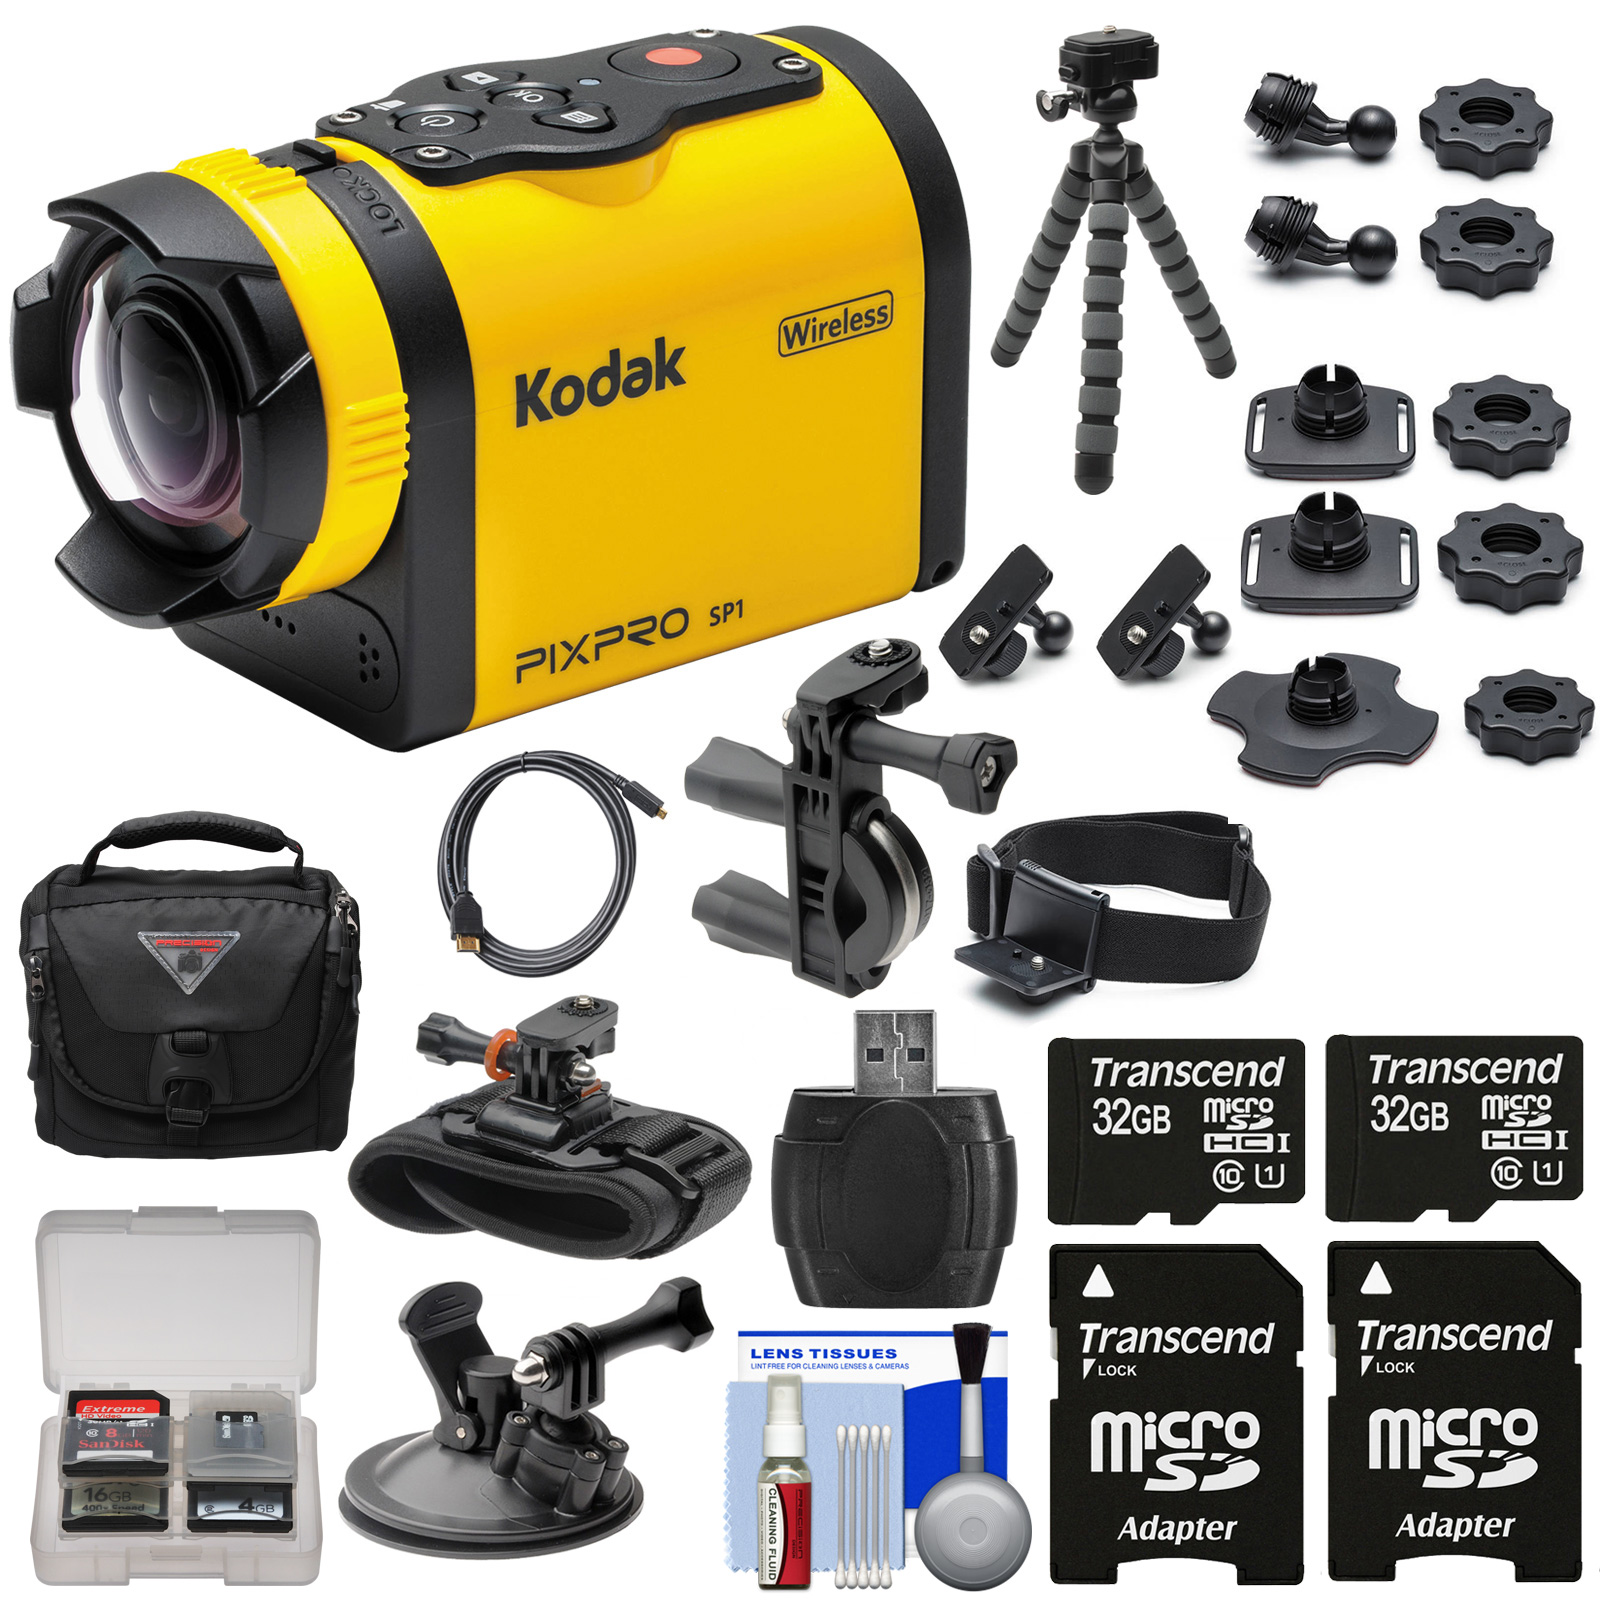 Kodak PixPro SP1 Video Action Camera Camcorder - Aqua Sport Pack with Handlebar, Wrist & Suction Cup Mounts + 64GBs + Case + Tripod Kit